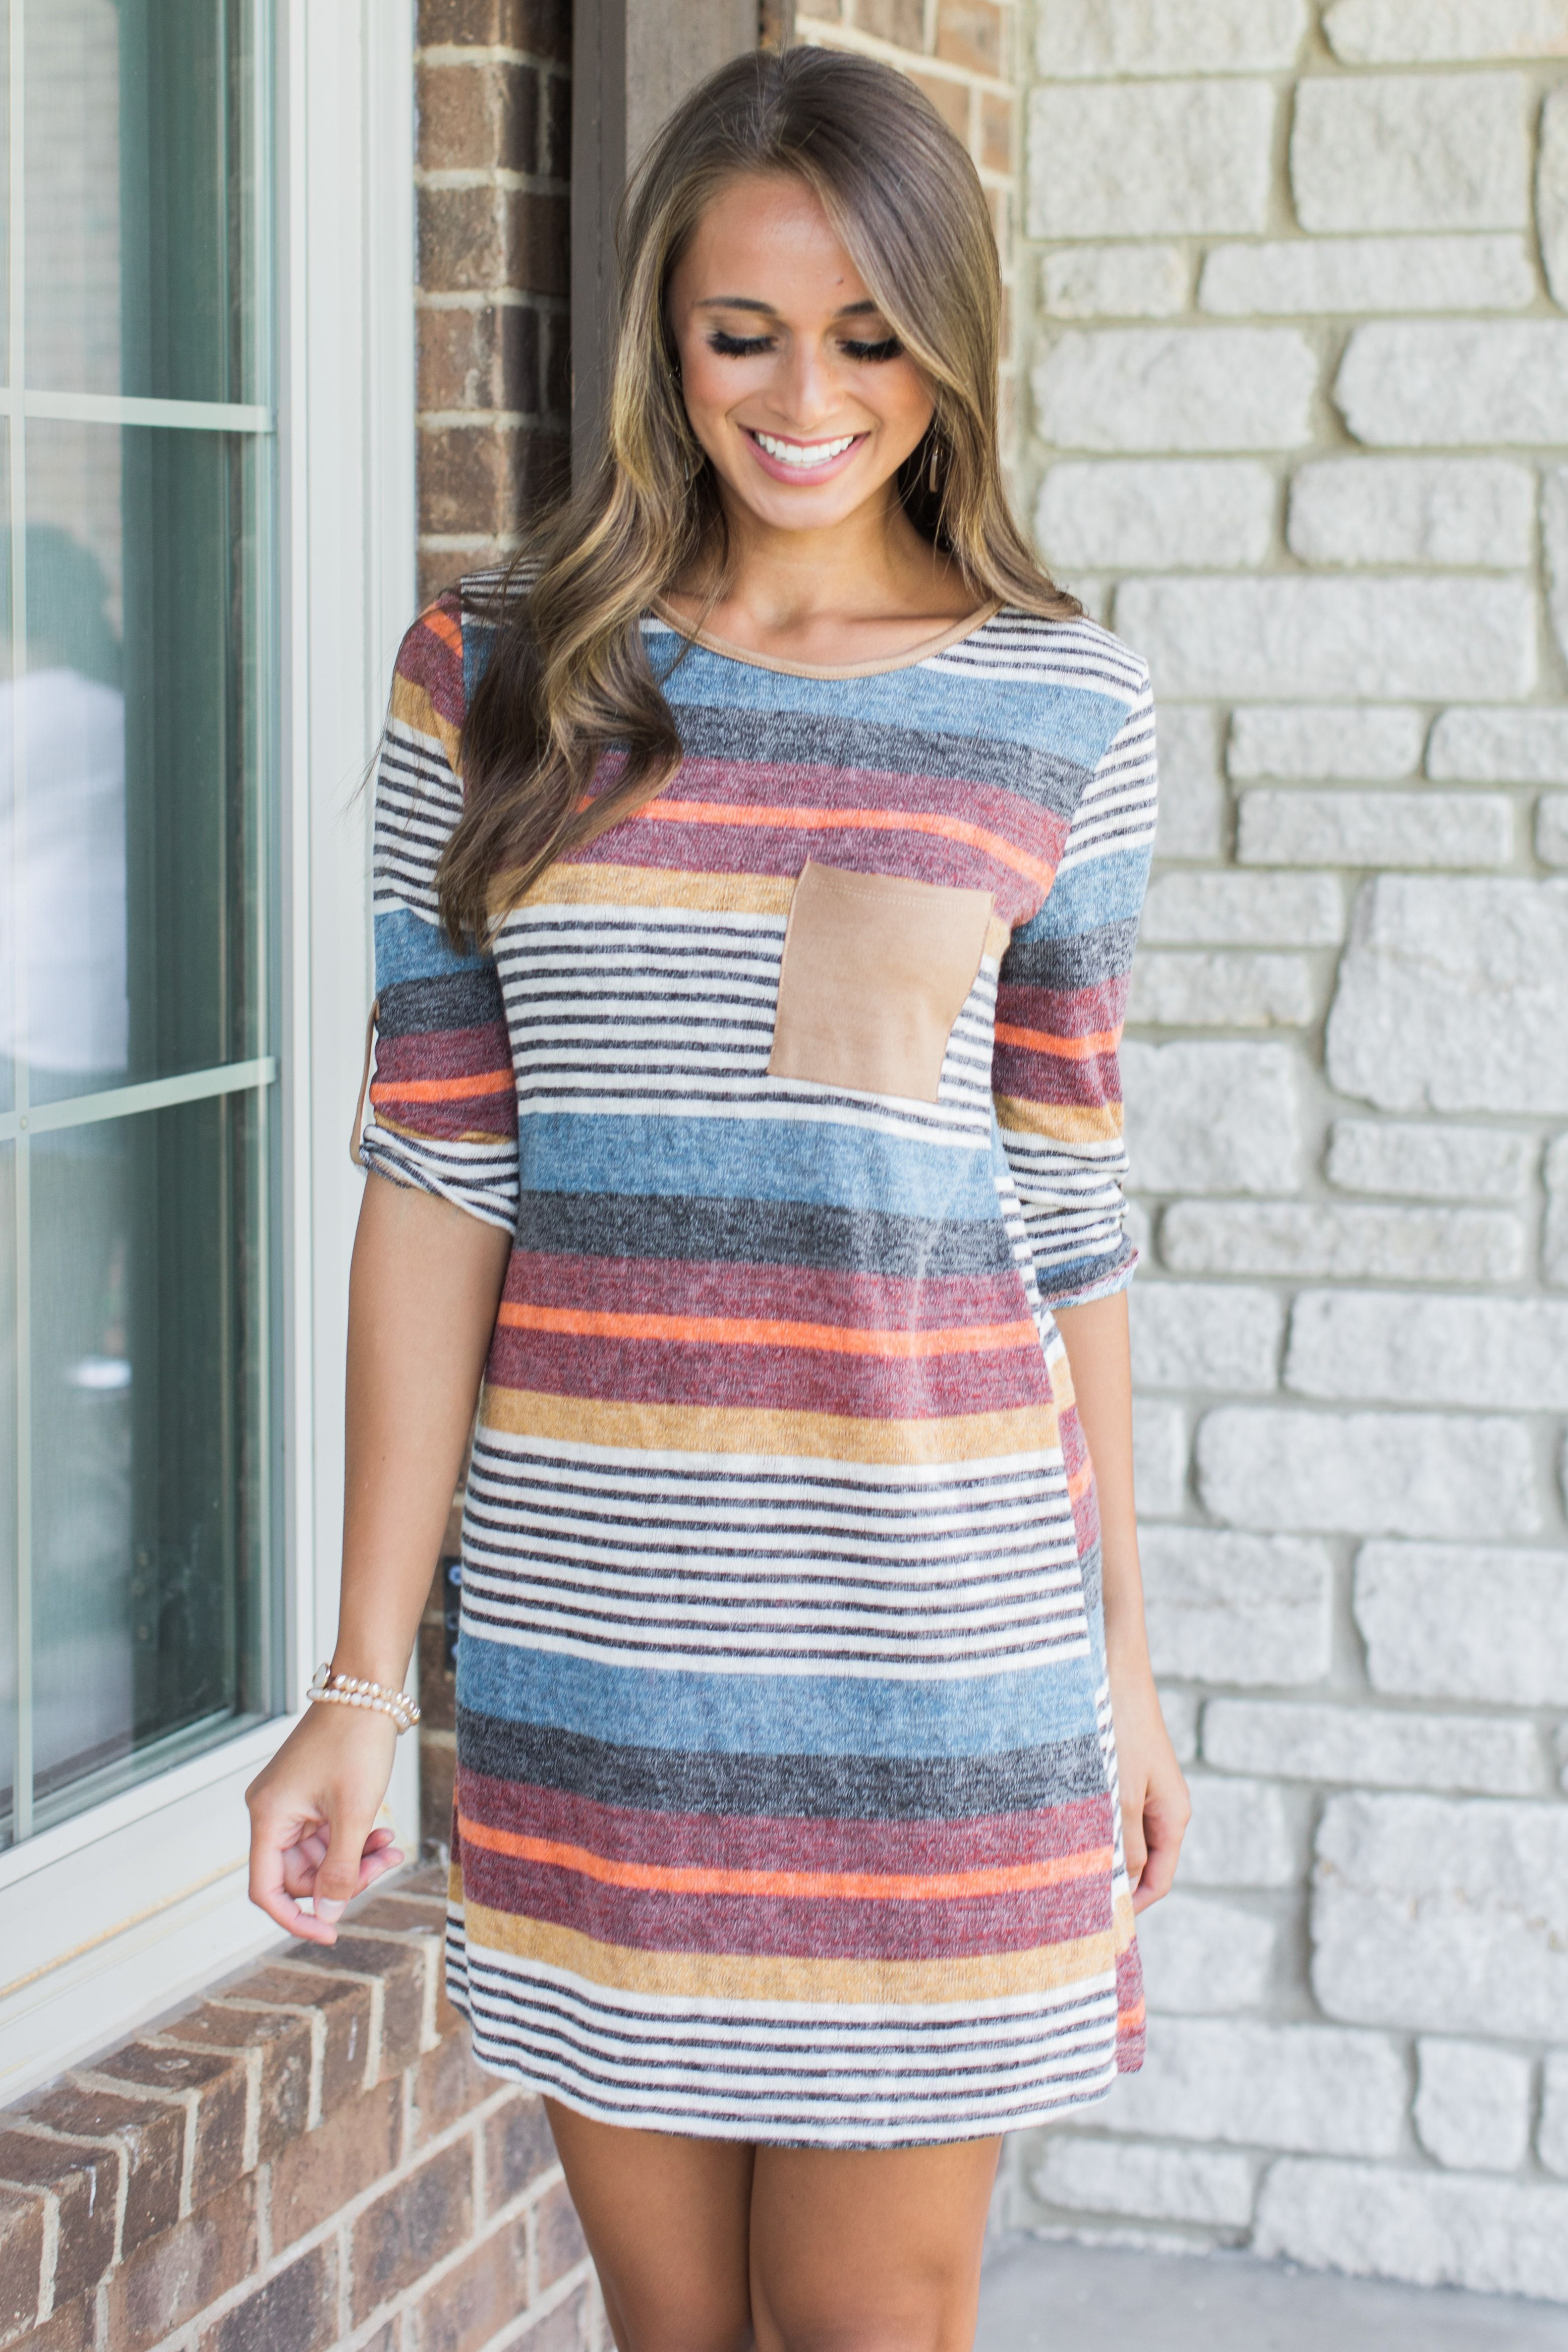 Glowing fondness striped dress prefall u pinterest sweet